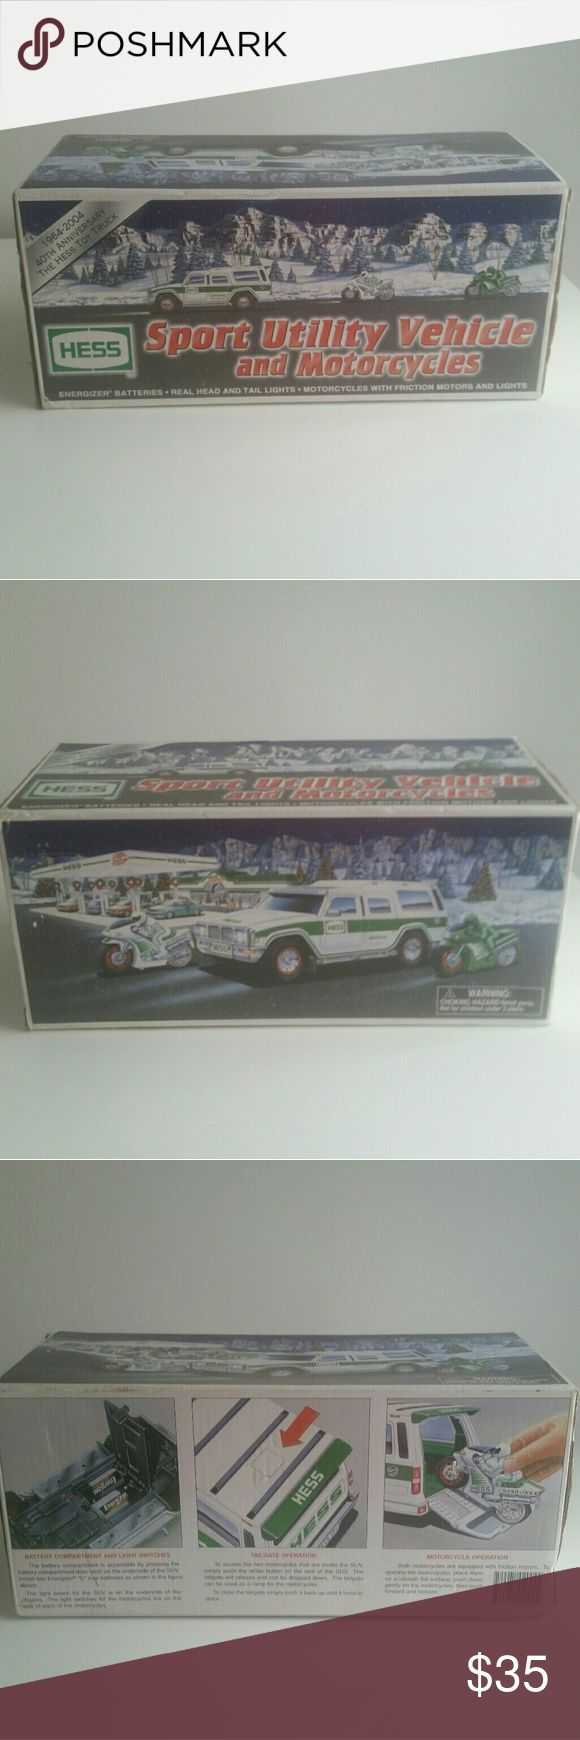 2004 Hess Collectible Toy Truck New in original box! 2004 Hess Sport Utility Vehicle and Motorcycles. The 2004 Hess toy truck featured a forty year celebration of the toy line, showcasing the first Sport Utility Vehicle and Motorcycles for the fleet! This was the first SUV as the primary vehicle and first vehicle to sport shock absorbers with all-terrain. Another first - two motorcycles included with realistic and working lights activated by a switch on the right handlebar! Batteries not…